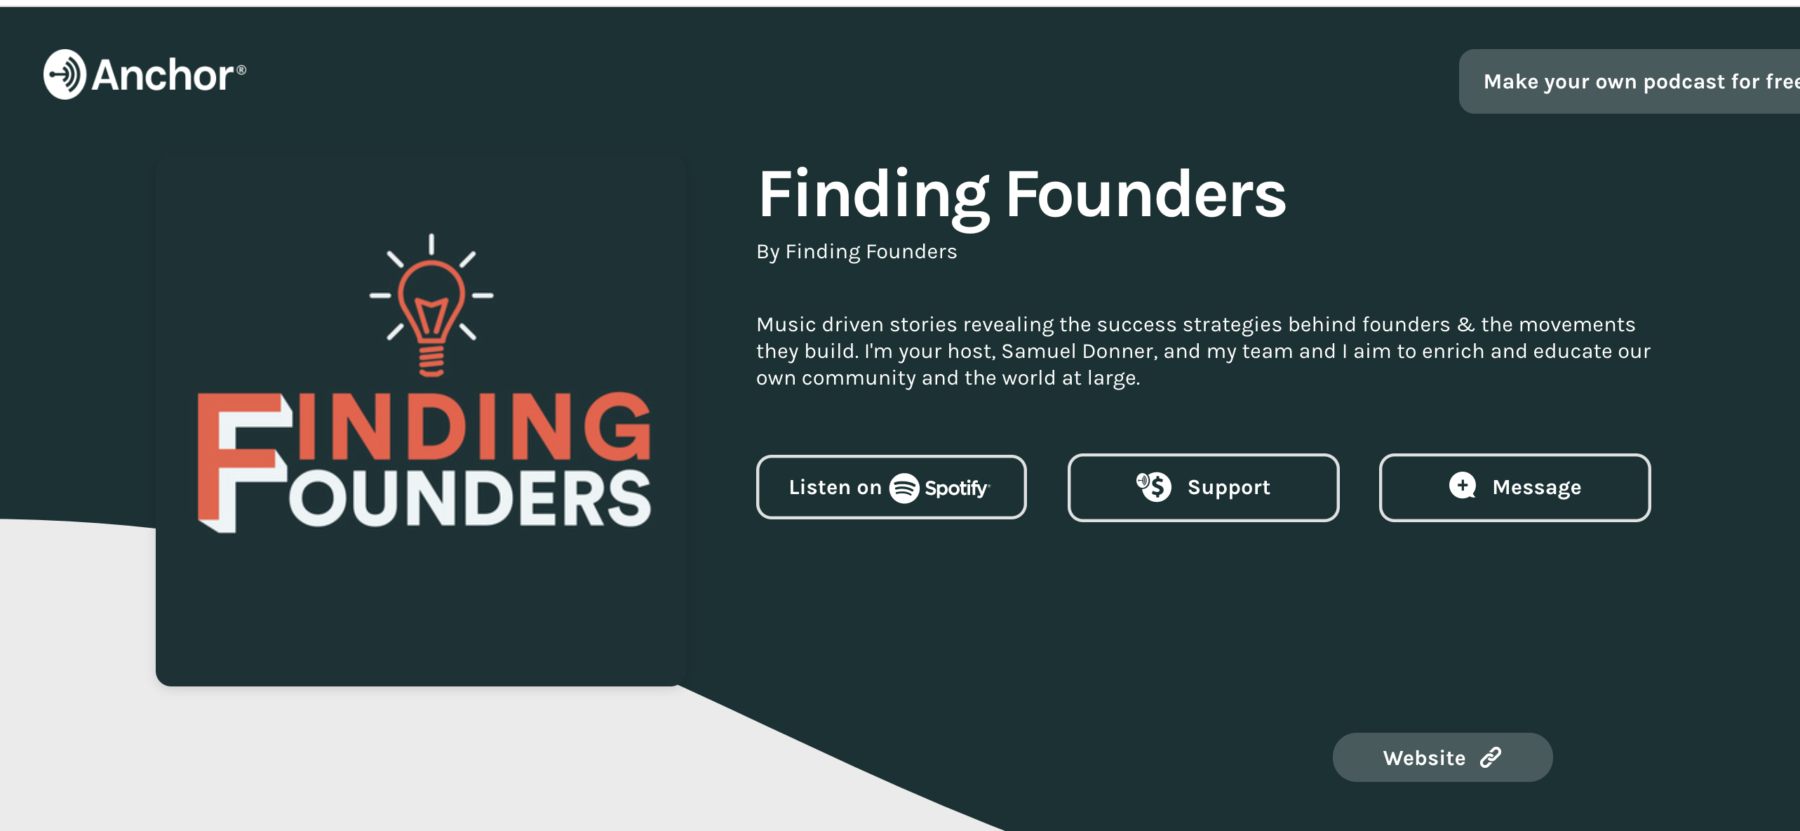 Finding Founders: No Emotions, All Data 1